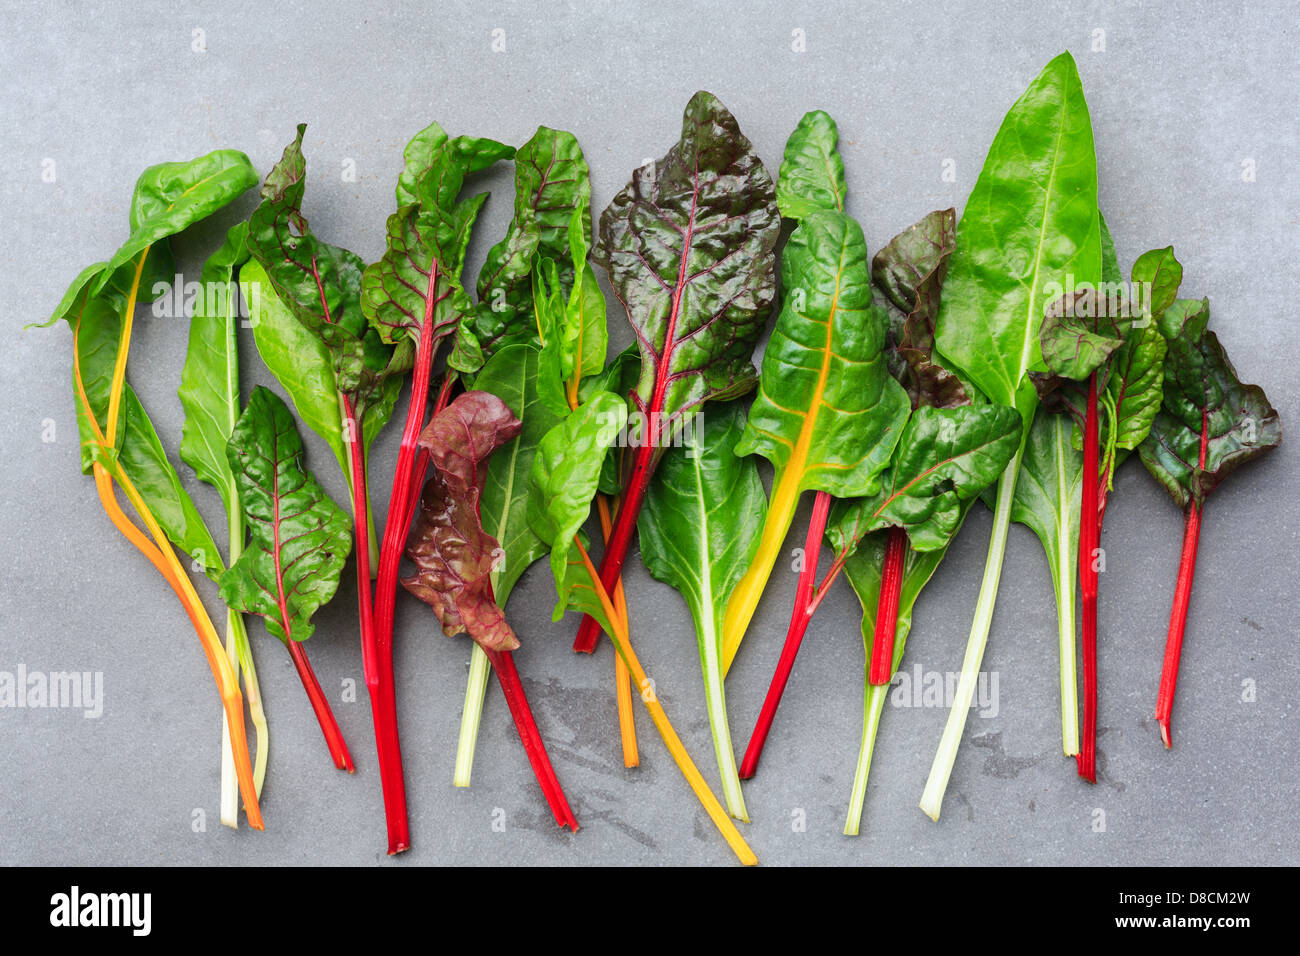 Rainbow Chard Leaves Stock Photo Alamy